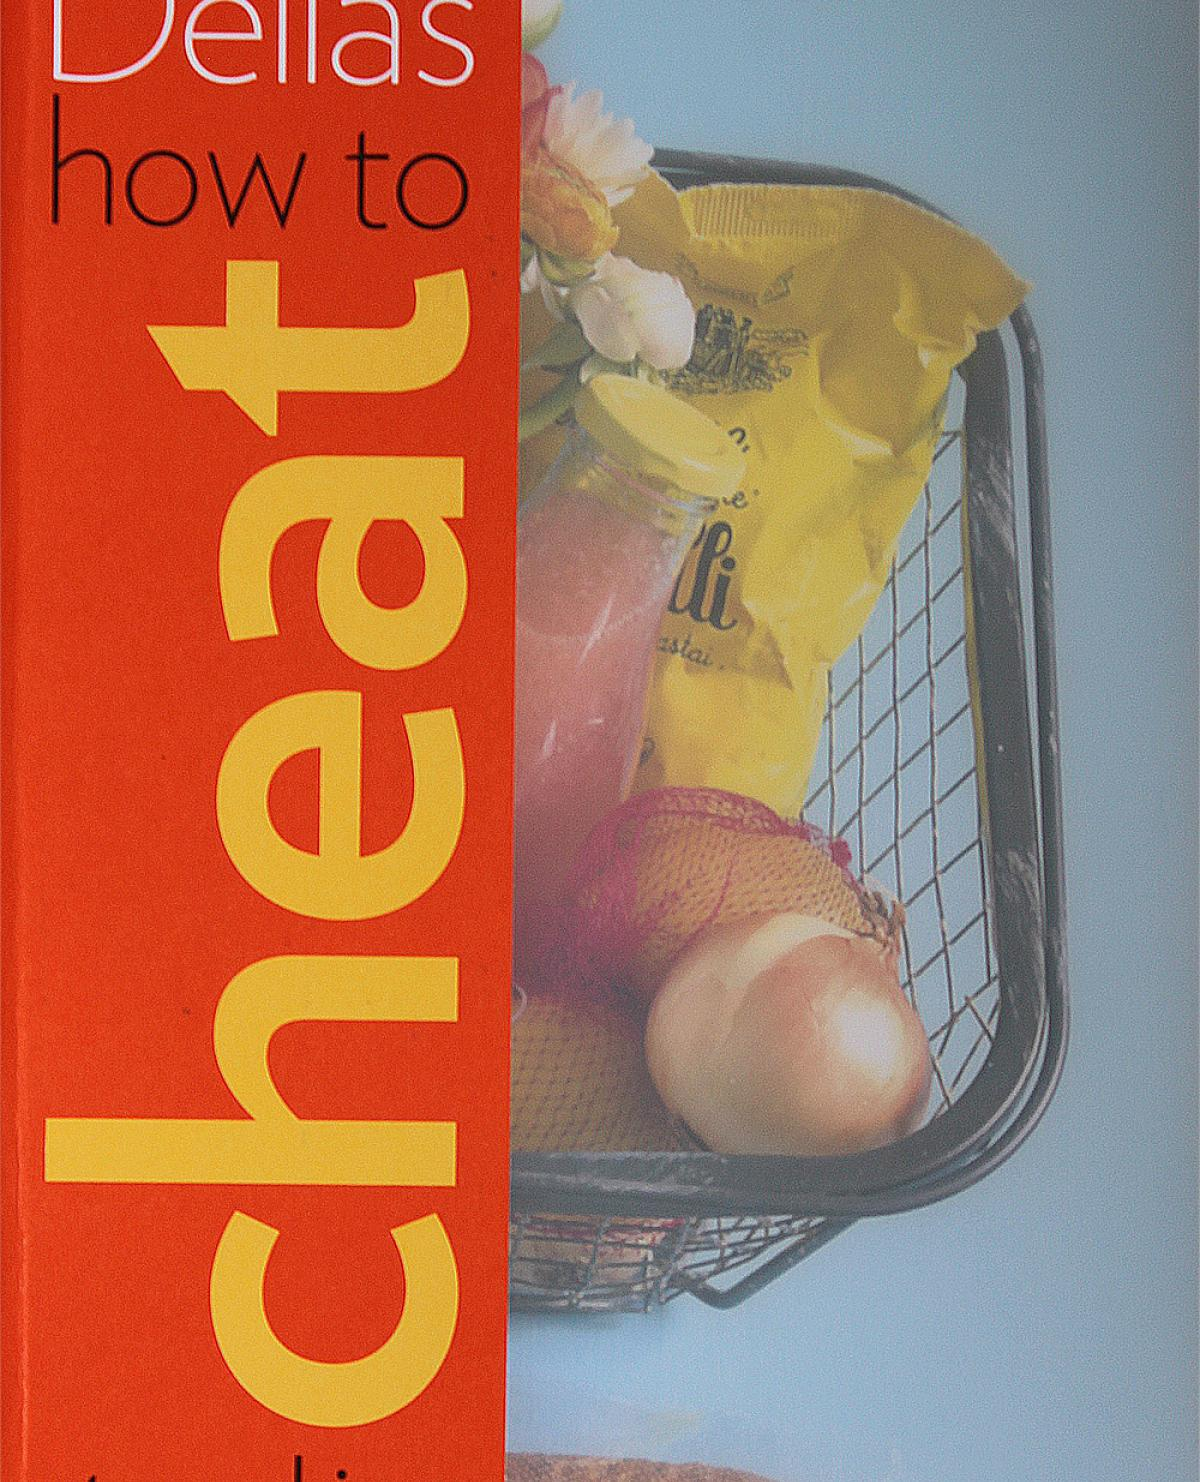 A picture of Delia's Delia's How to Cheat at Cooking recipes